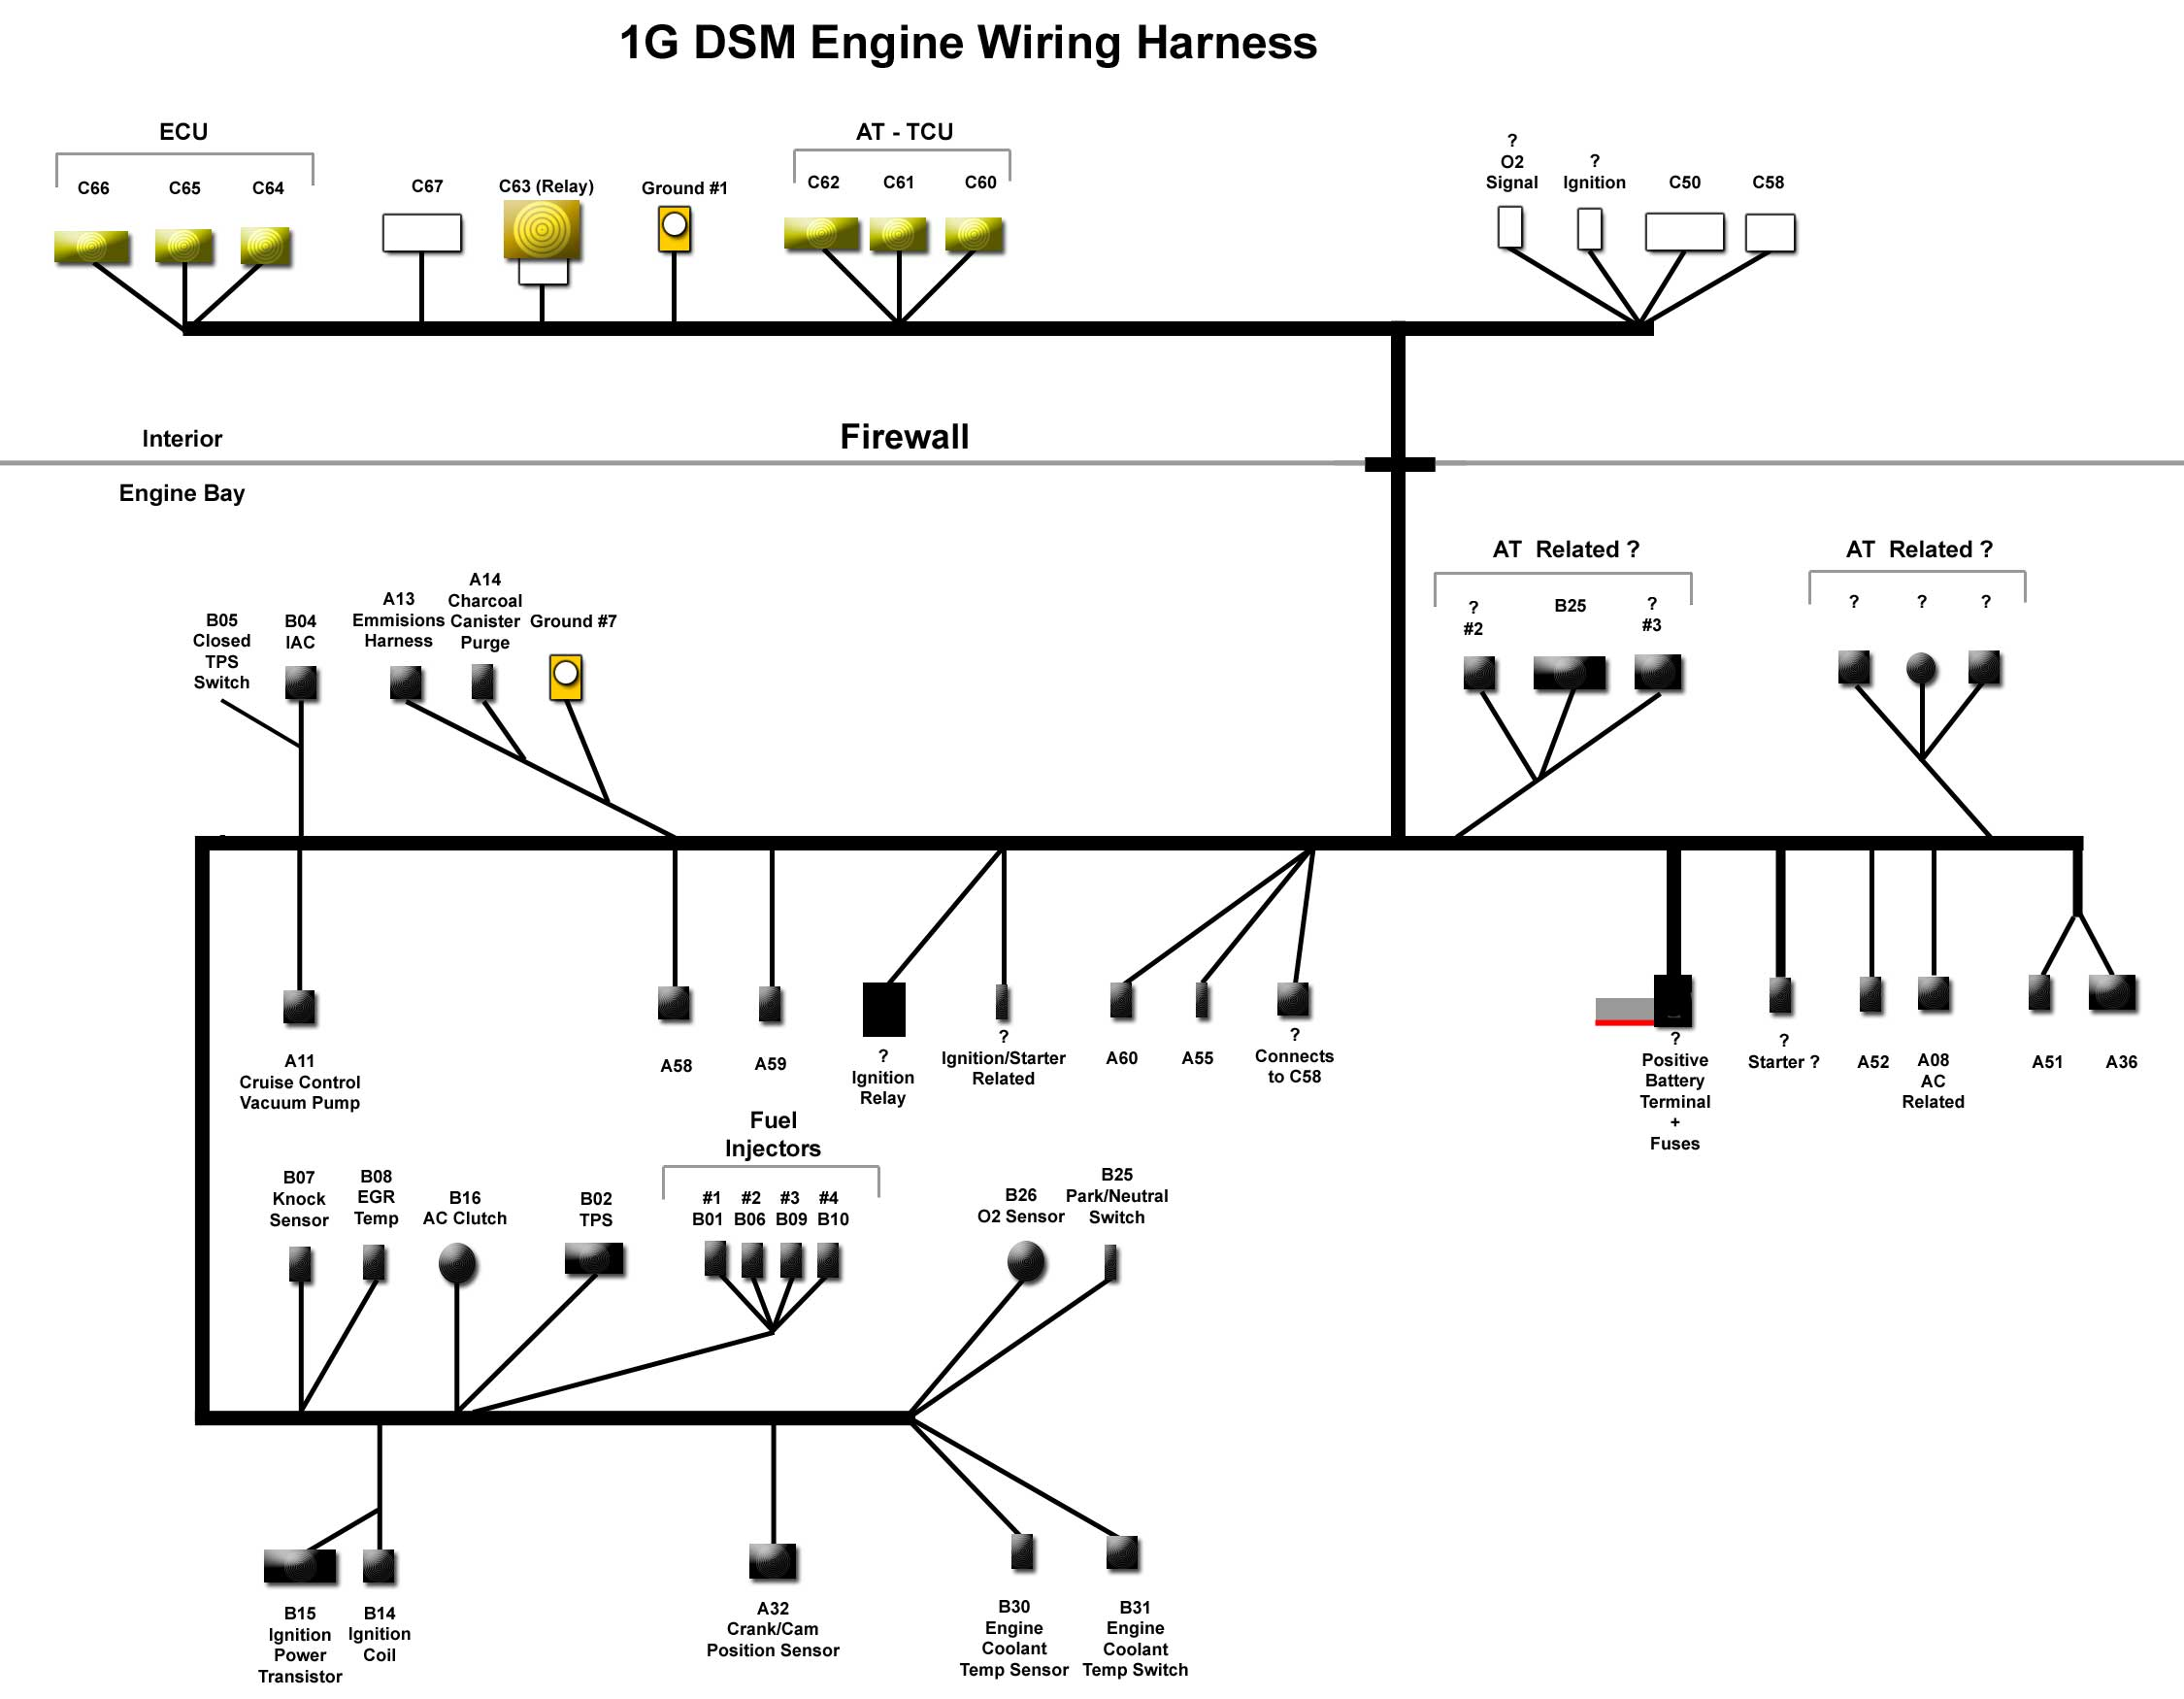 1G DSM EngineHarness wiring harness diagram jeep liberty wiring harness diagram what is an engine wiring harness at nearapp.co